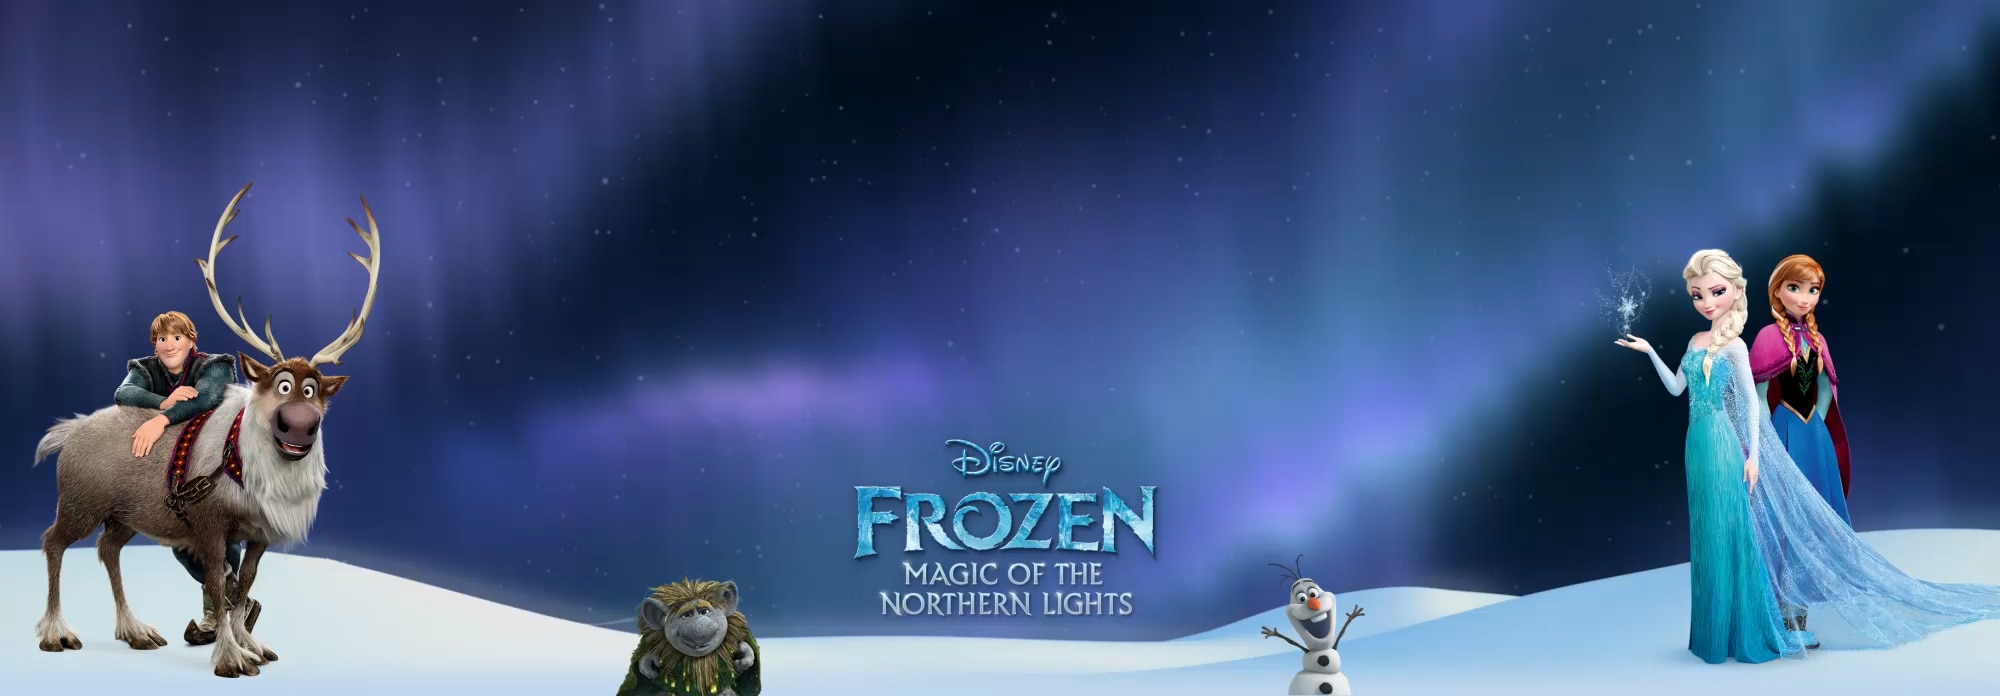 UK Frozen Northern Lights Flex Hero Header